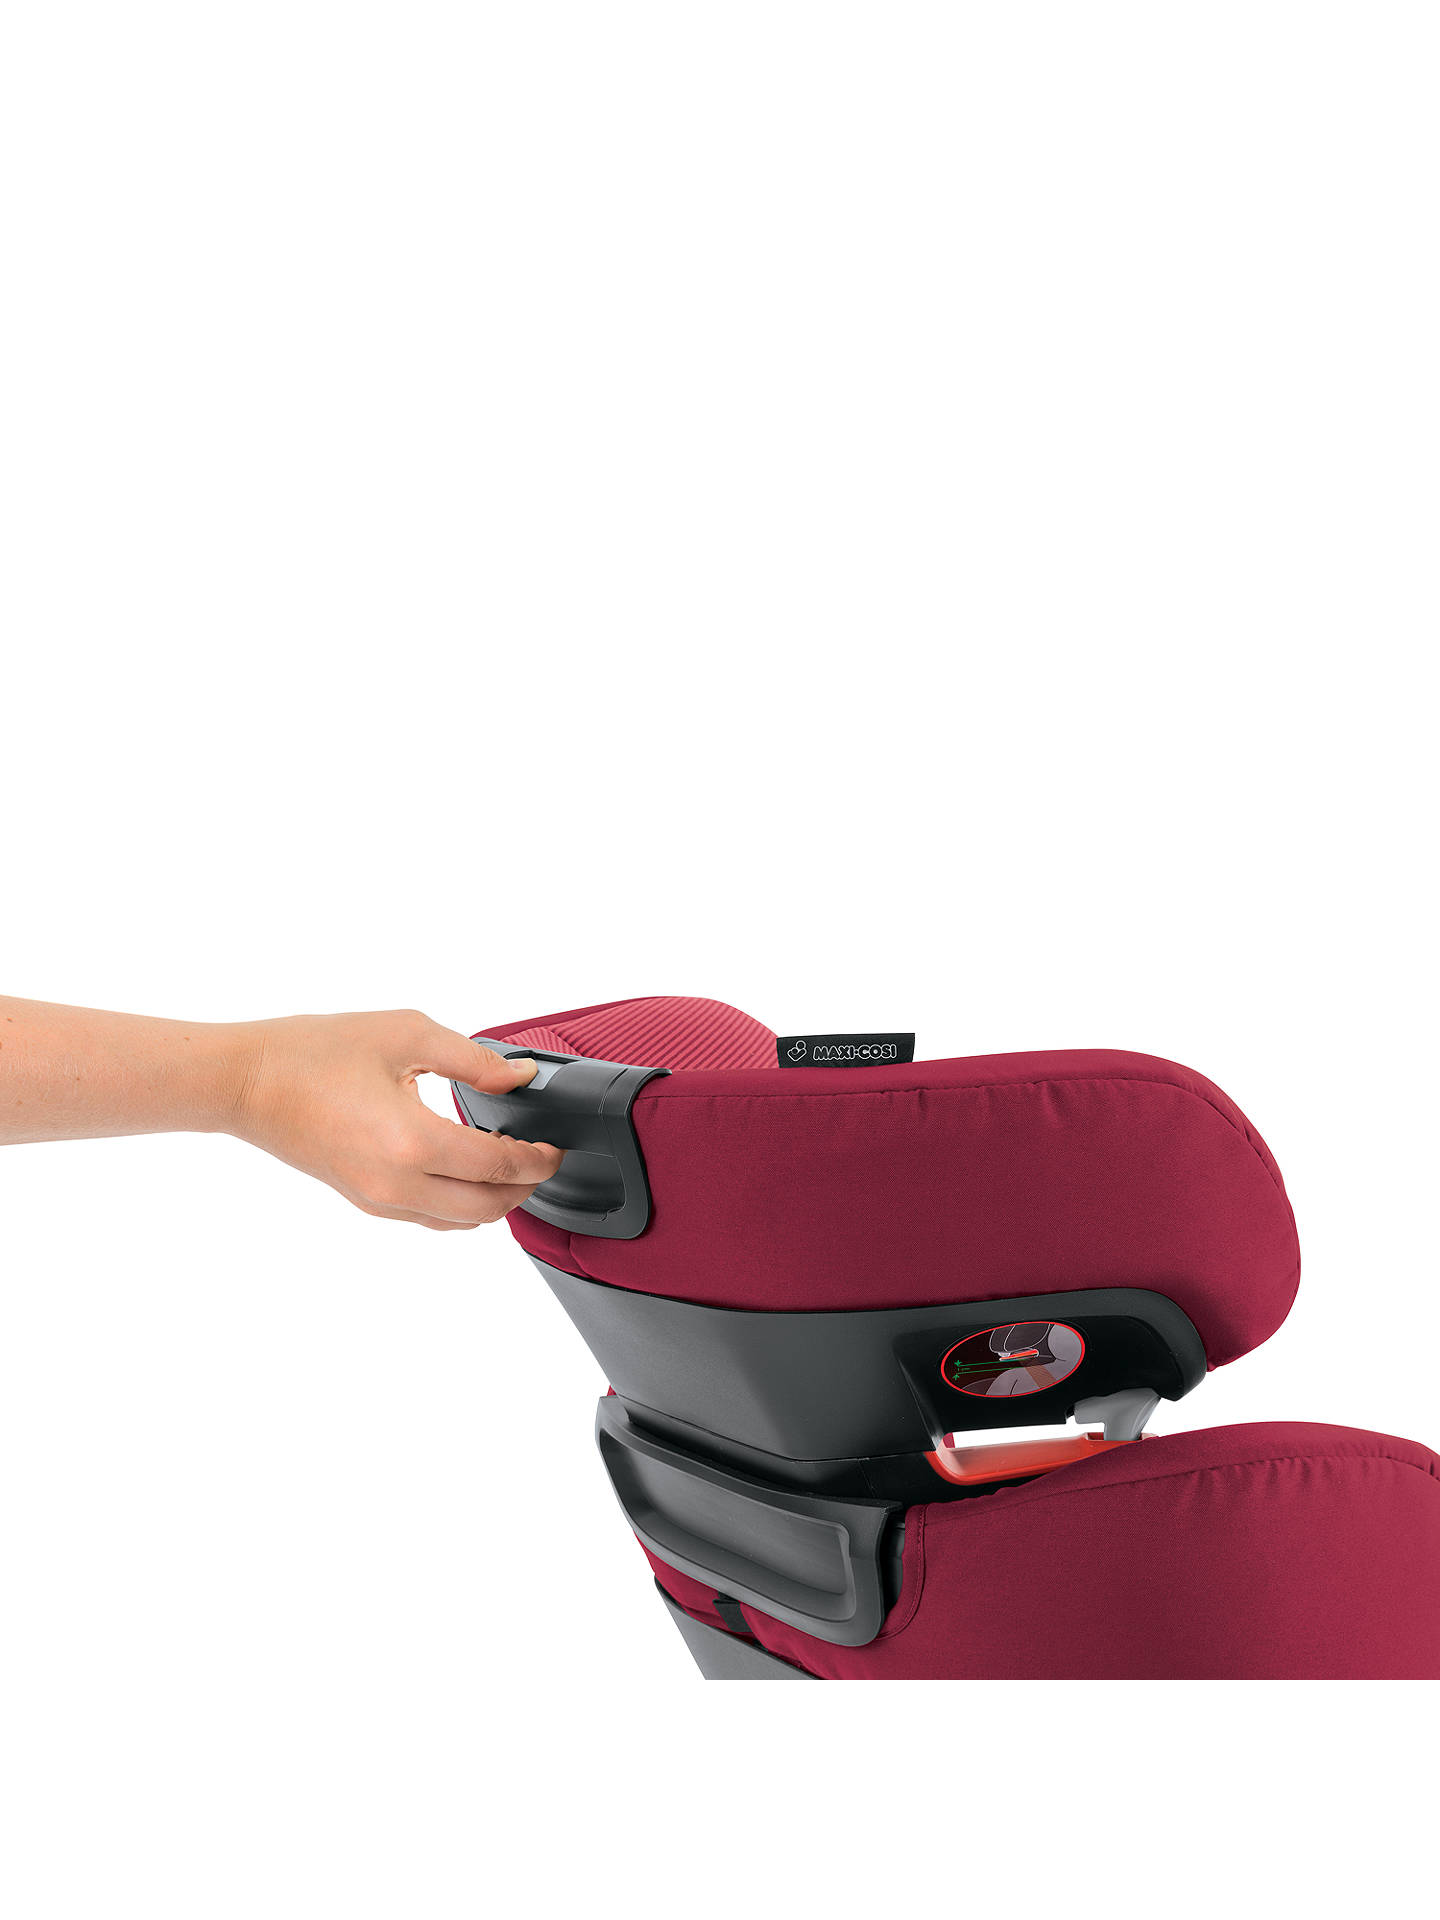 BuyMaxi-Cosi Rodifix Air Protect Group 2/3 Car Seat, Robin Red Online at johnlewis.com